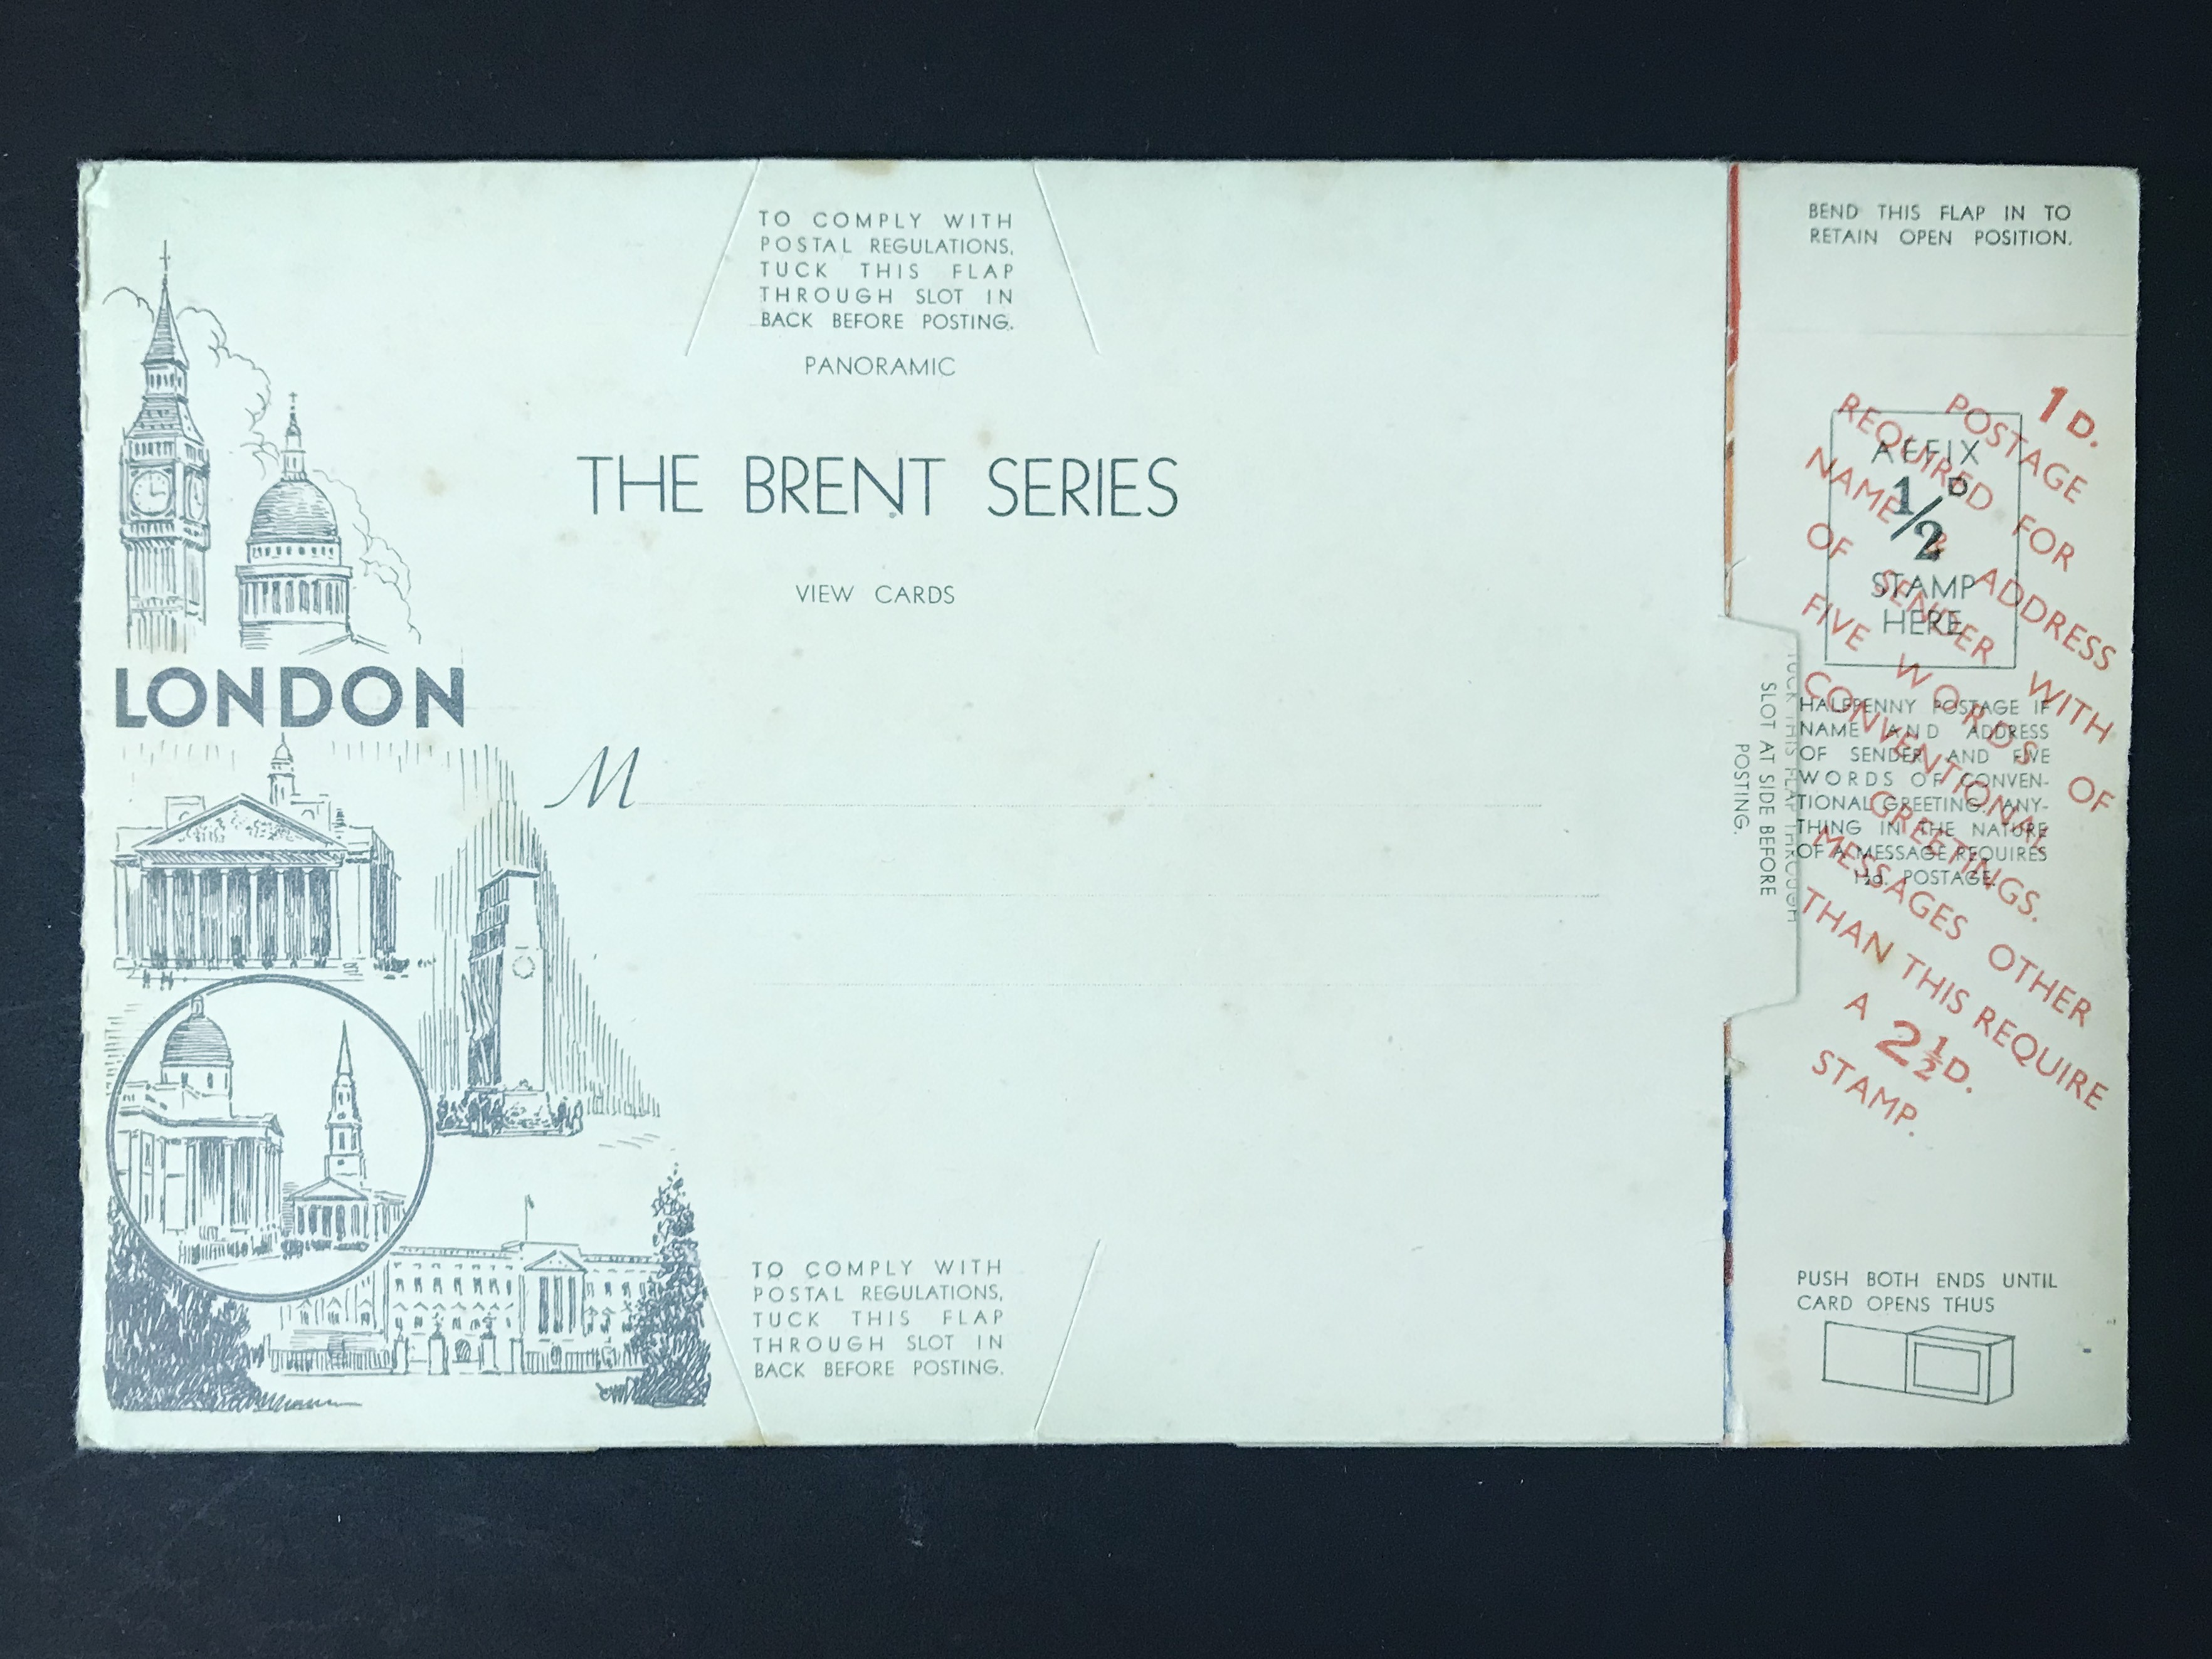 FIVE LONDON POSTCARDS - THE BRENT SERIES OF PANORAMIC VIEW CARDS - Image 13 of 13